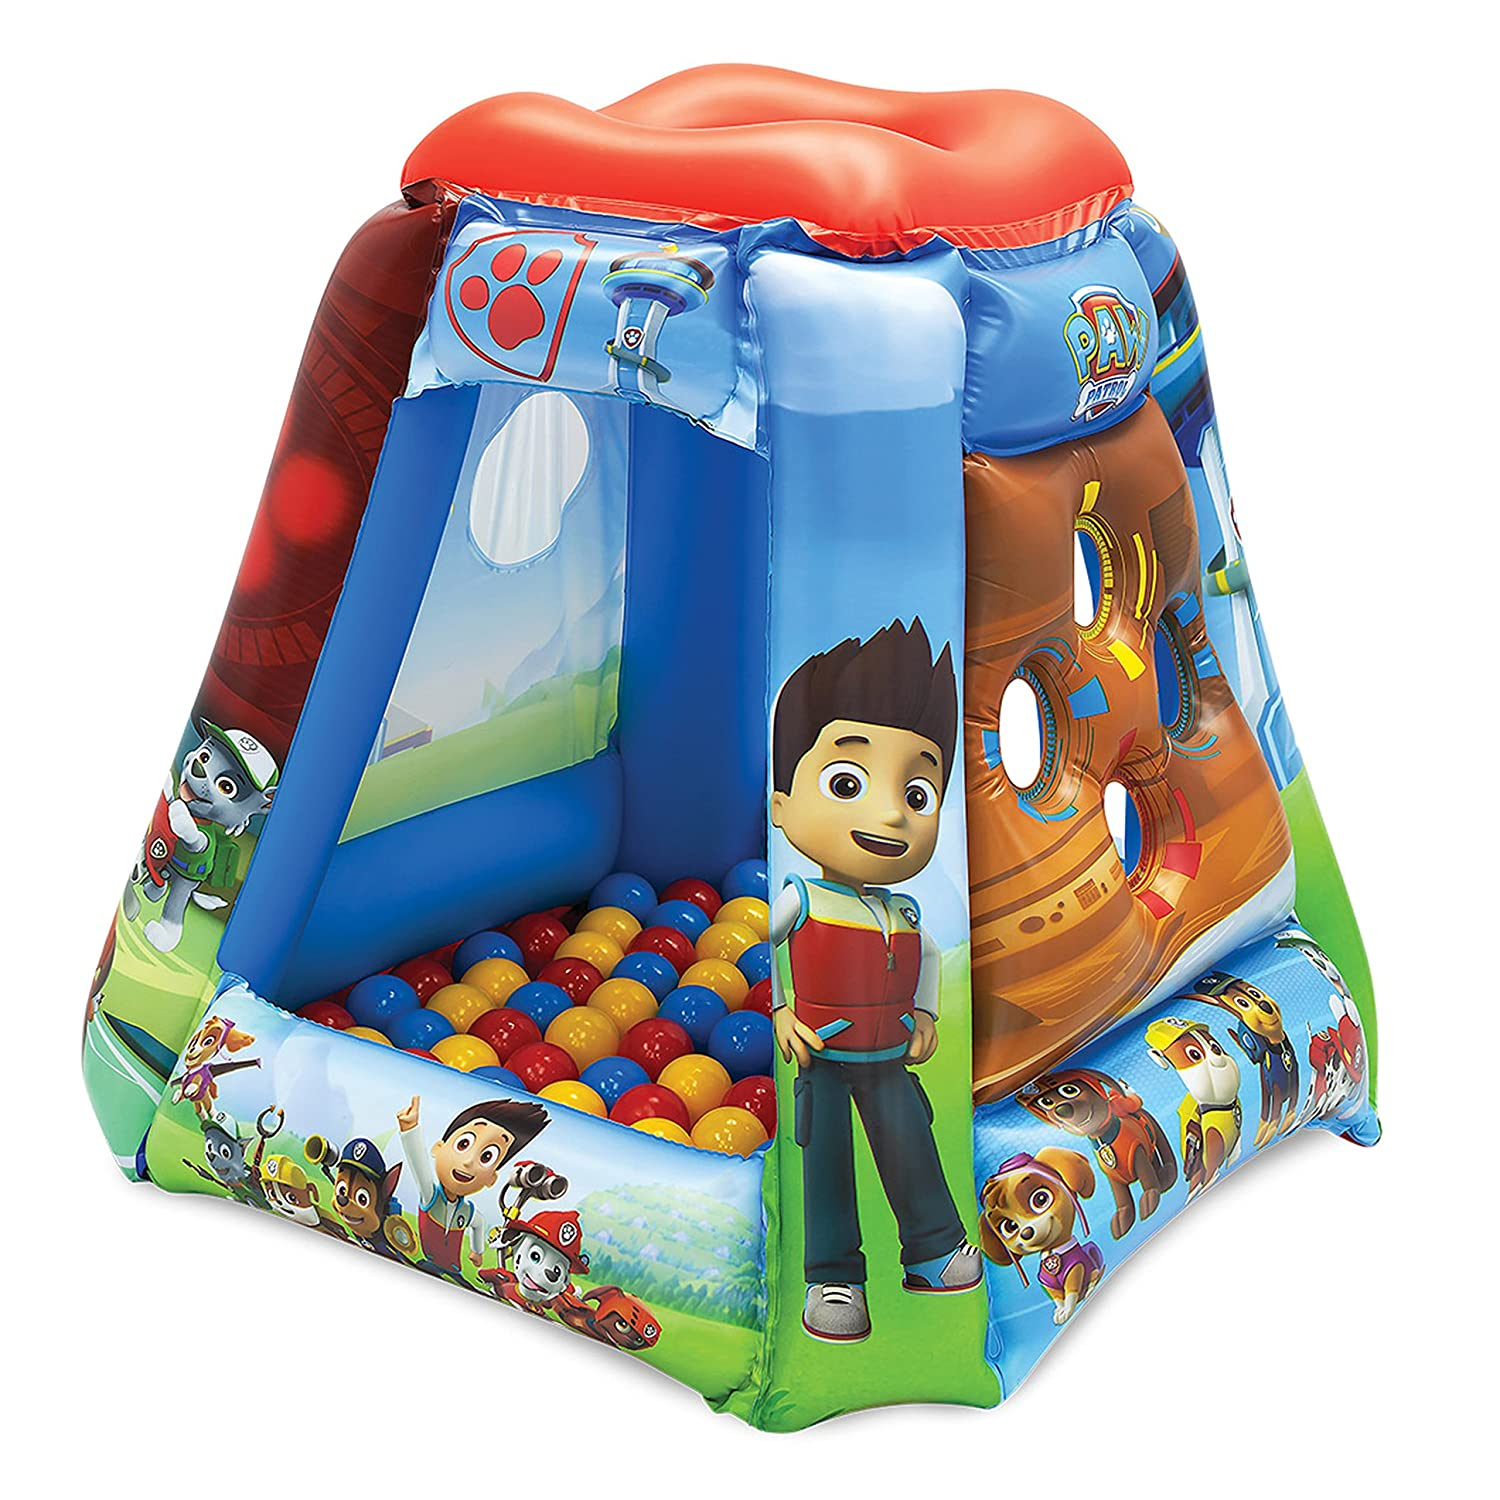 Paw Patrol 8912 All Paws on Deck with 20 Balls Playhouse